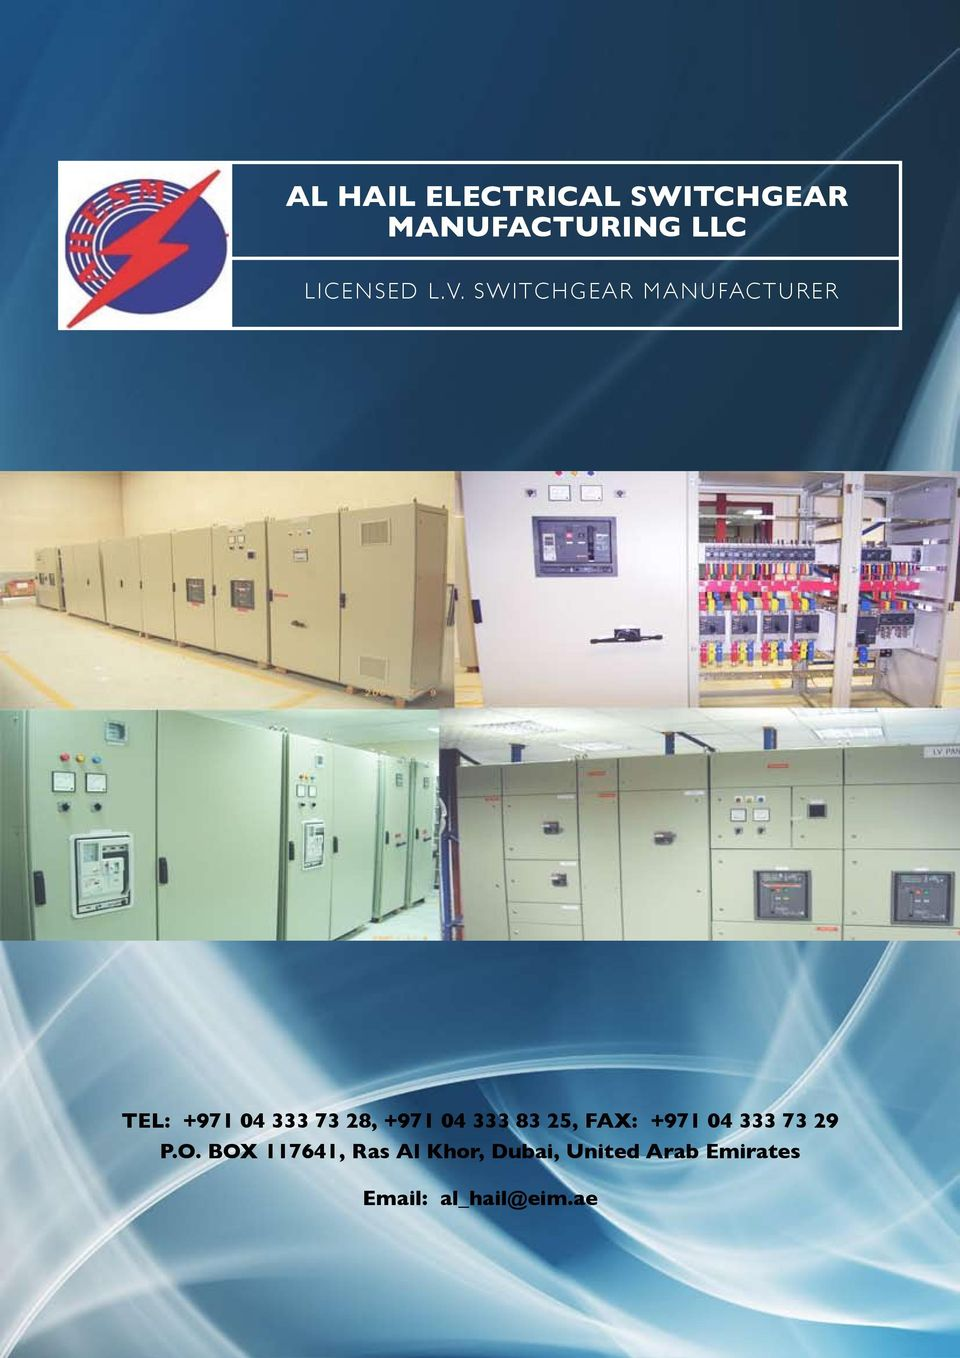 AL HAIL ELECTRICAL SWITCHGEAR MANUFACTURING LLC - PDF